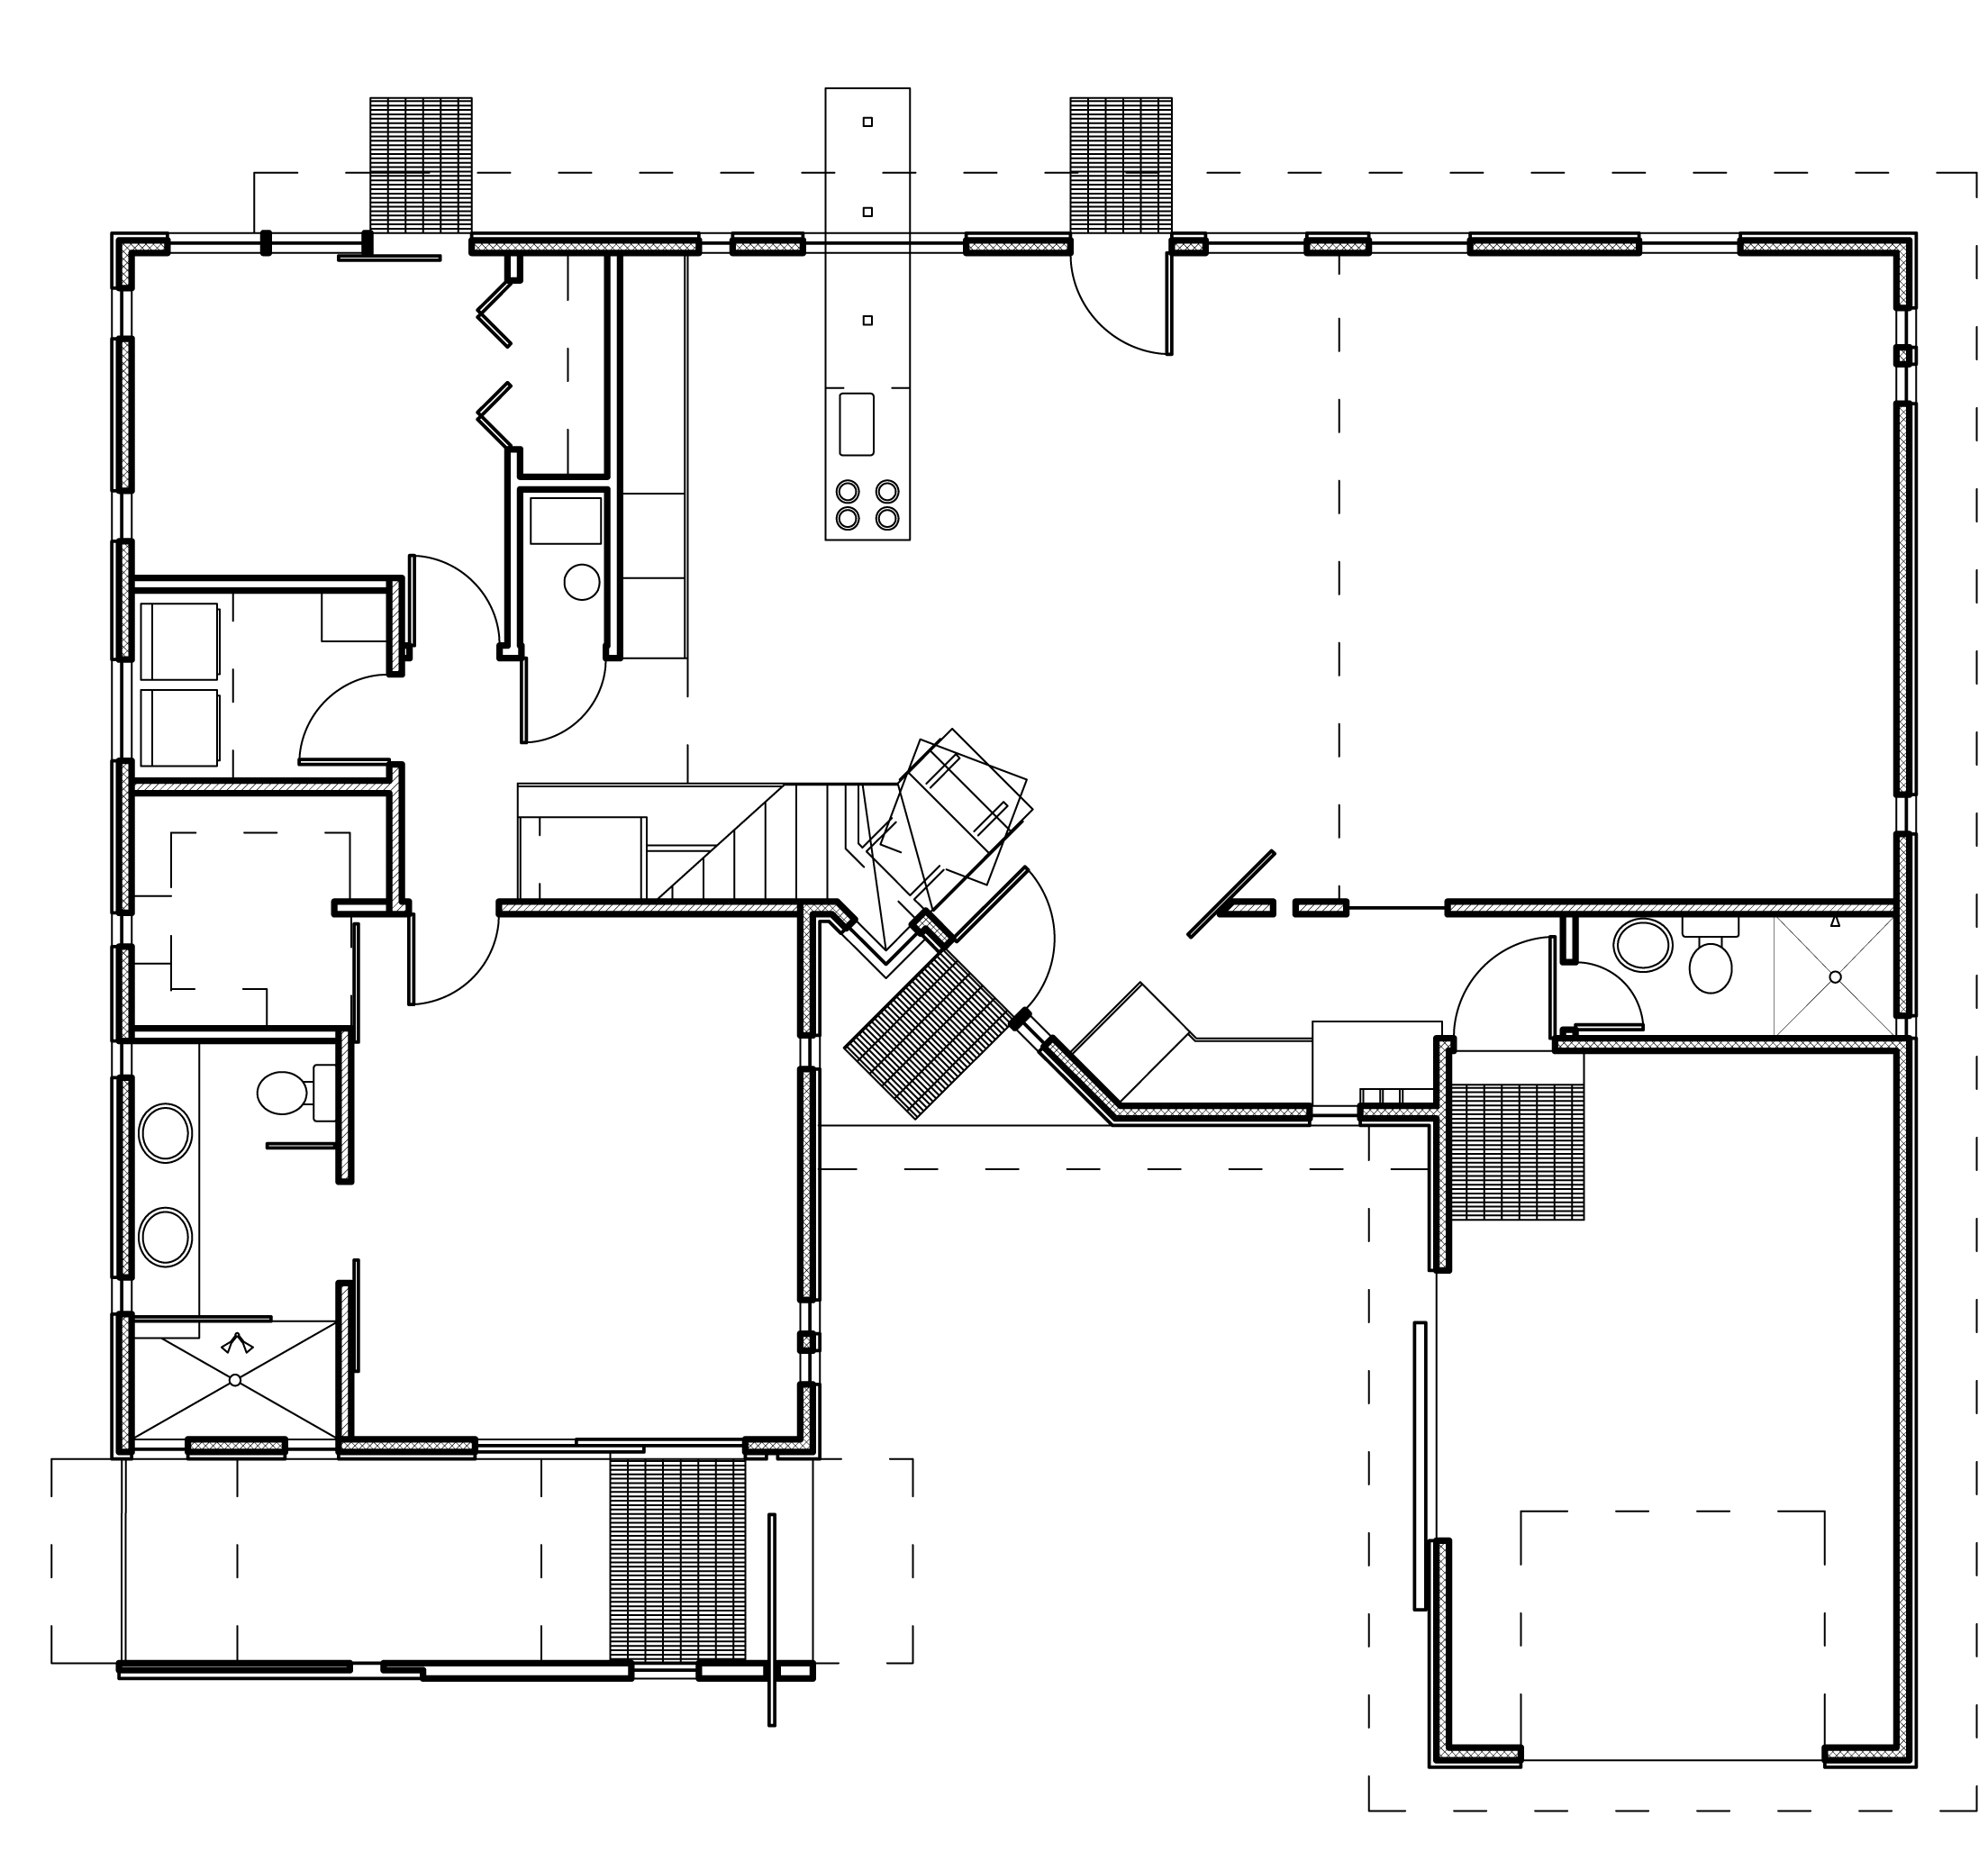 Modern house plans contemporary home designs floor plan 03 for Modern house blueprints